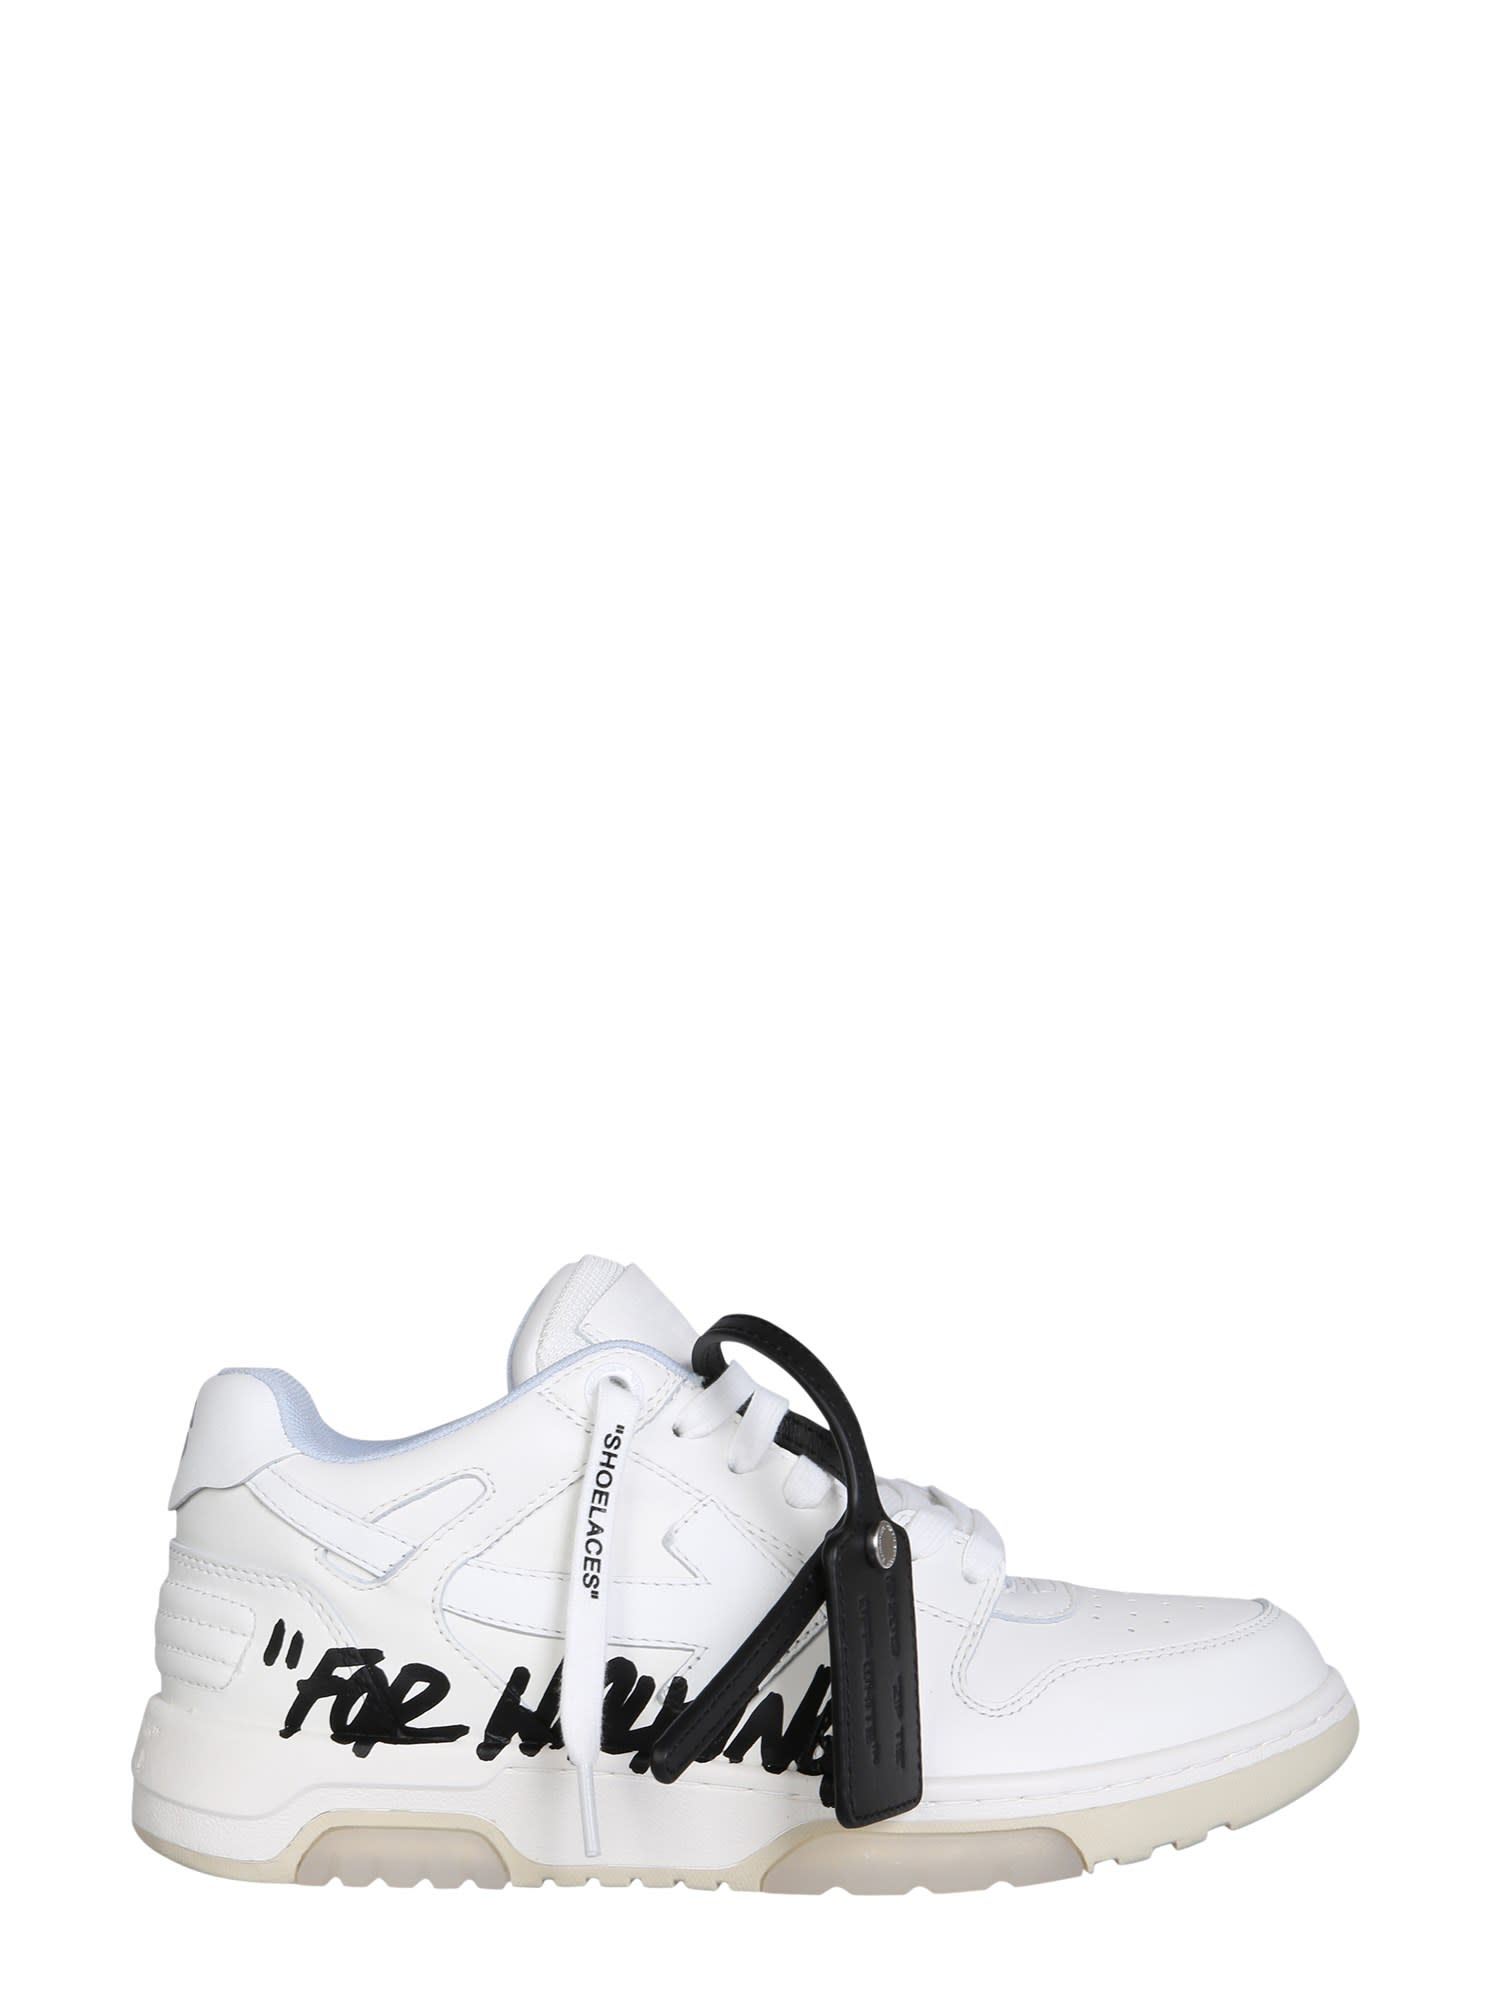 Off-White Leathers OUT OF OFFICE SNEAKERS